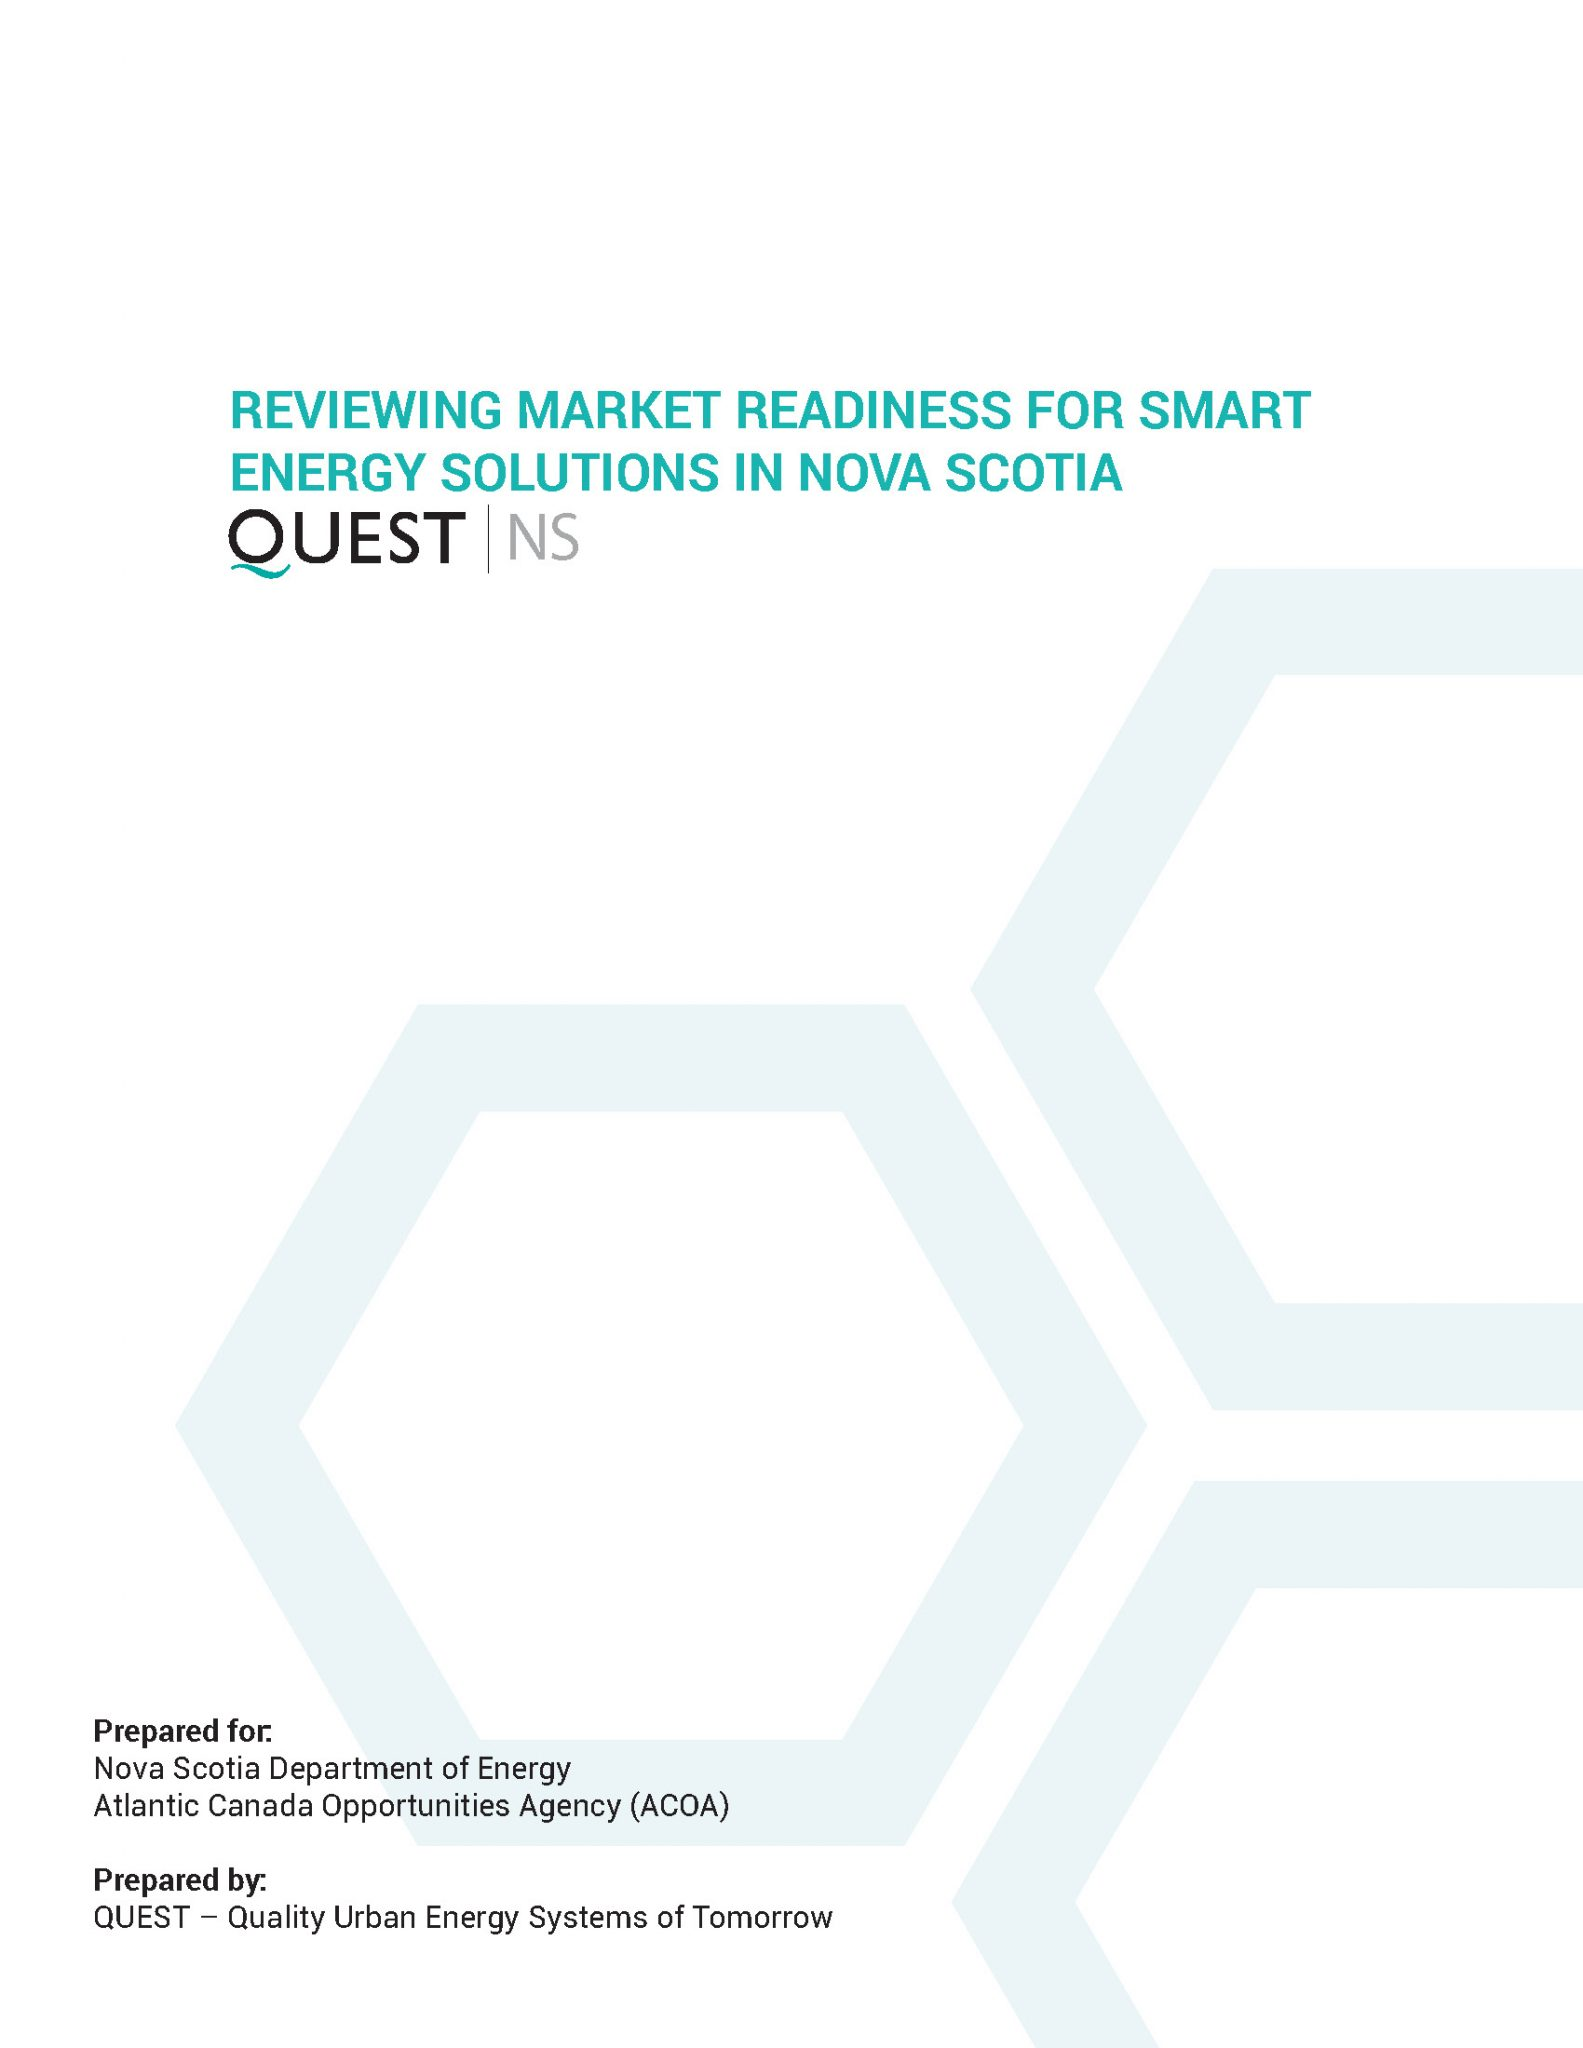 Reviewing Market Readiness For Smart Energy Solutions in Nova Scotia 2017